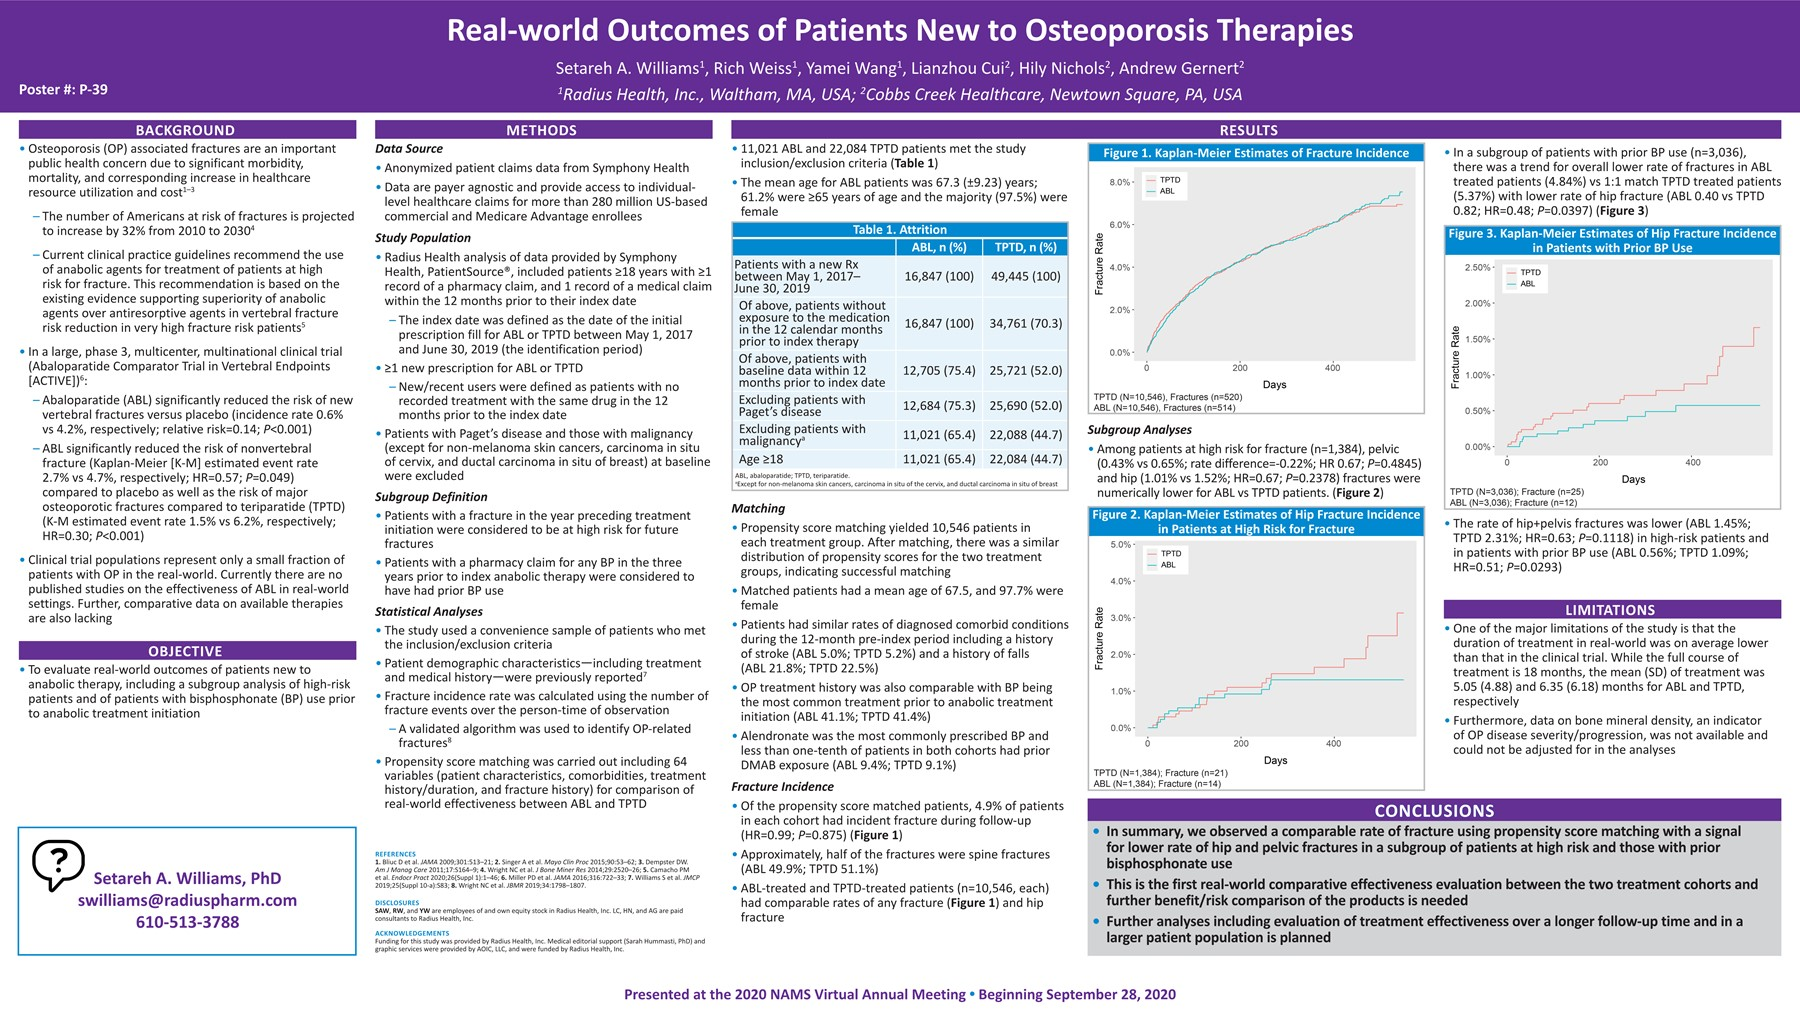 Real-world Outcomes of Patients New to Osteoporosis Therapies